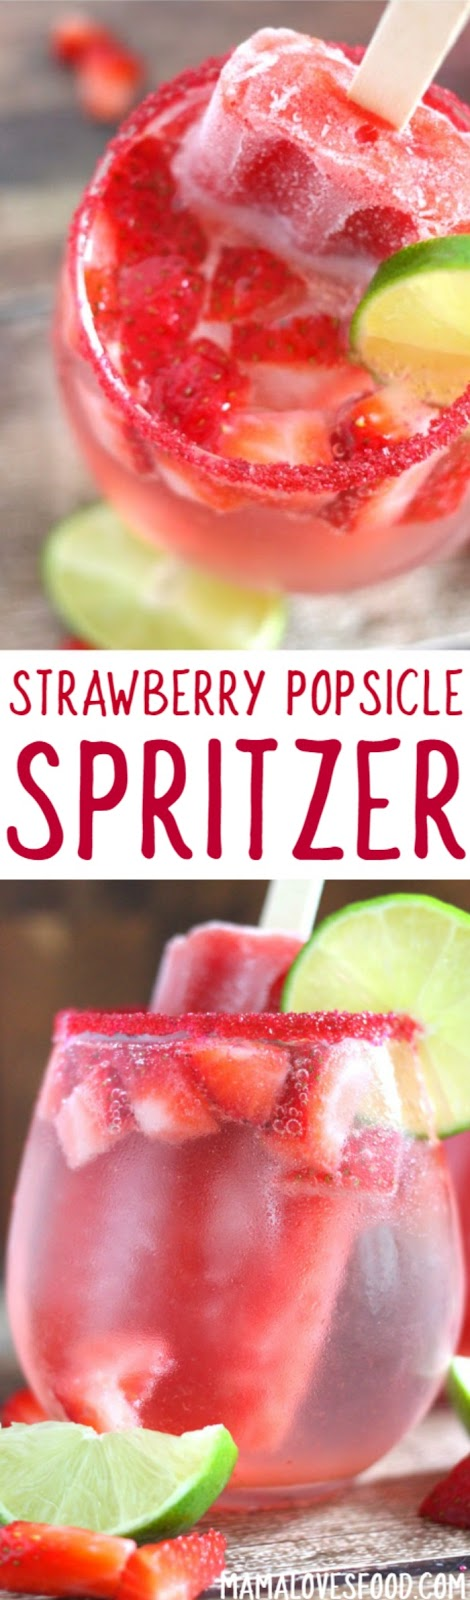 Popsicle Cocktail Recipes with Alcohol